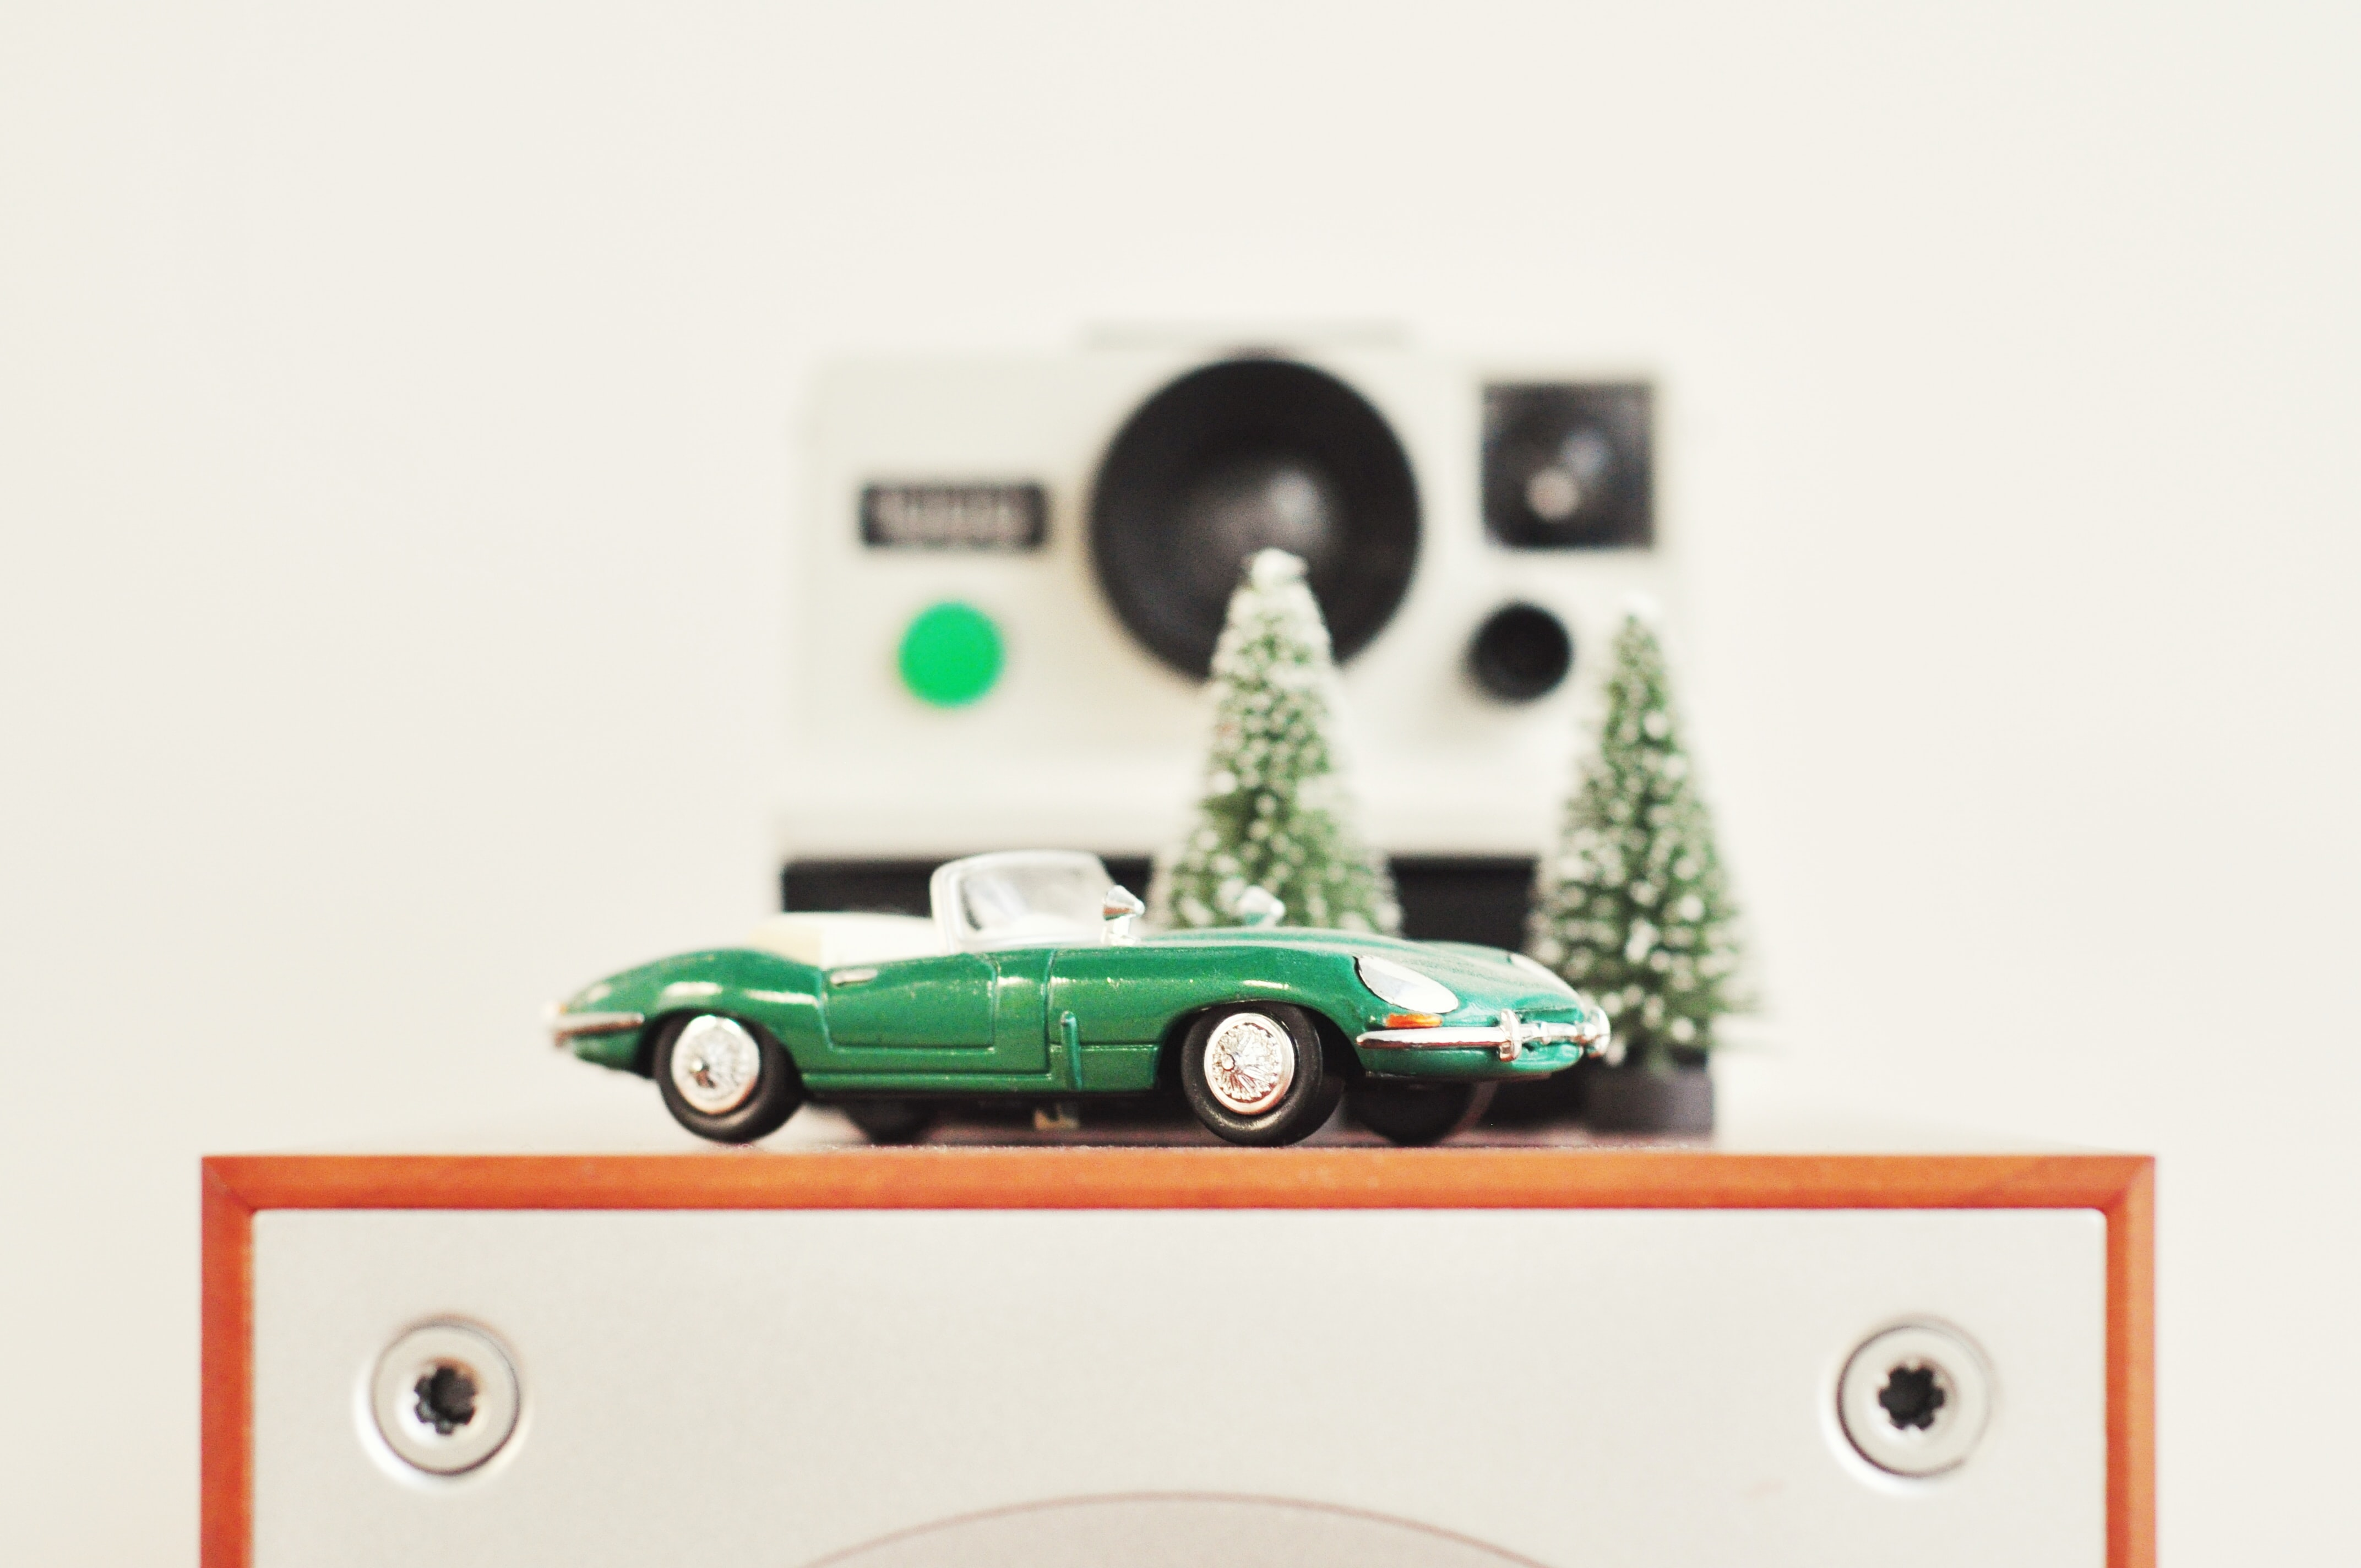 Toy car and trees in front of a polaroid camera.